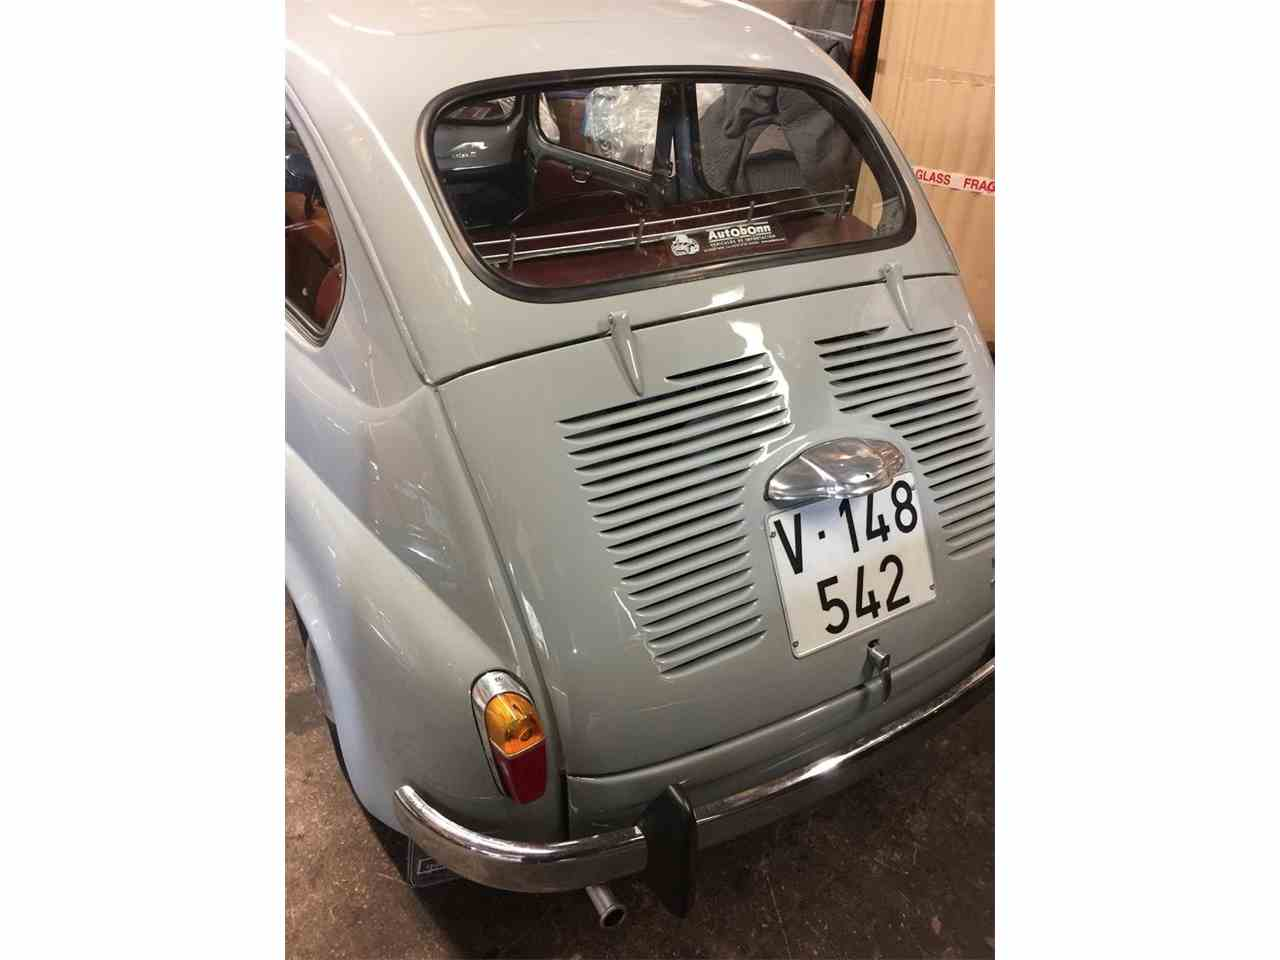 Large Picture of 1965 Seat 600D - $22,000.00 - JLUL